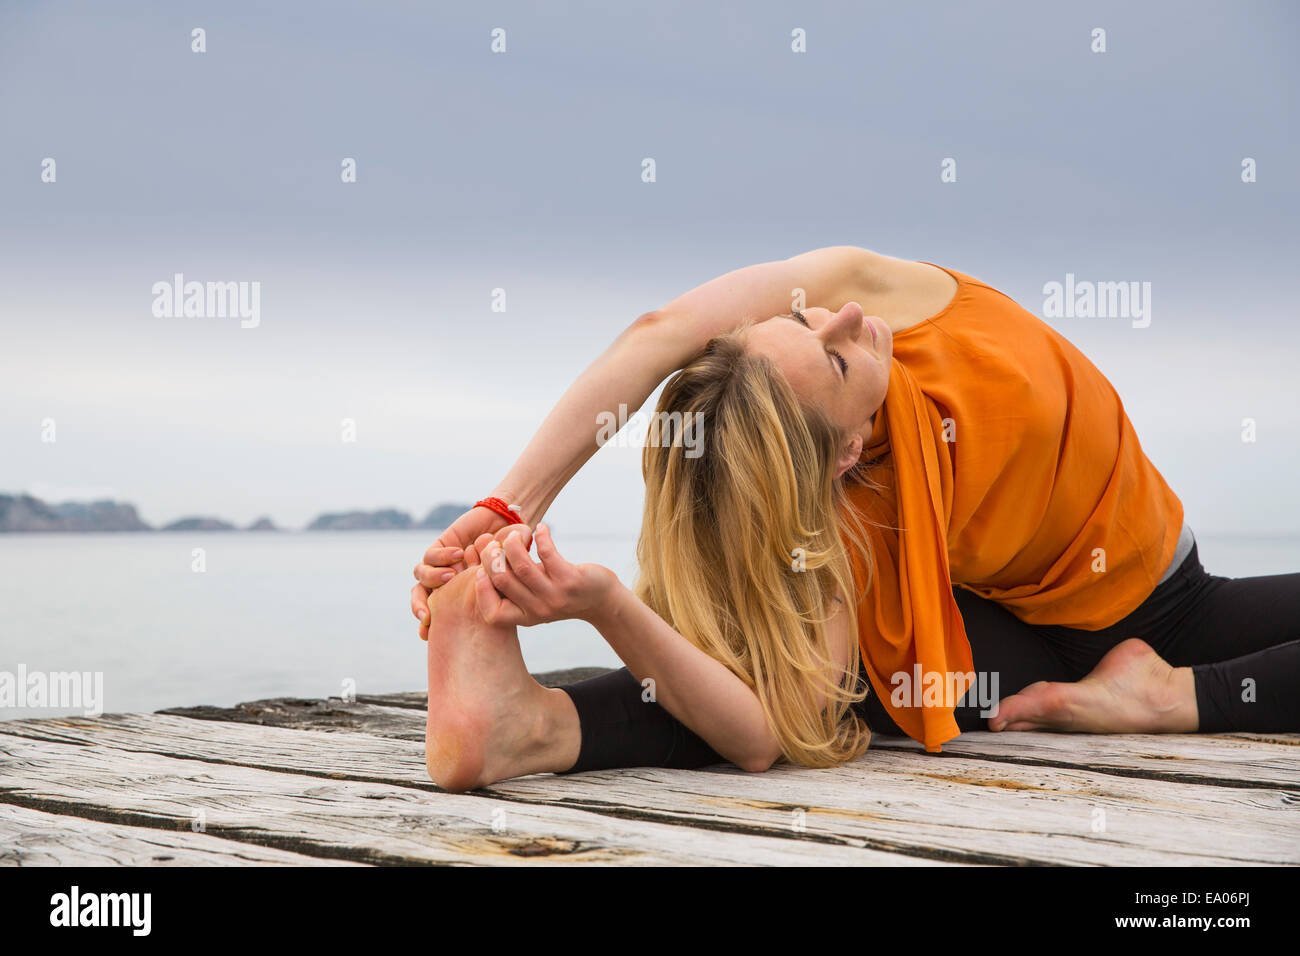 Mid adult woman touching toes practicing yoga on wooden pier mer Photo Stock